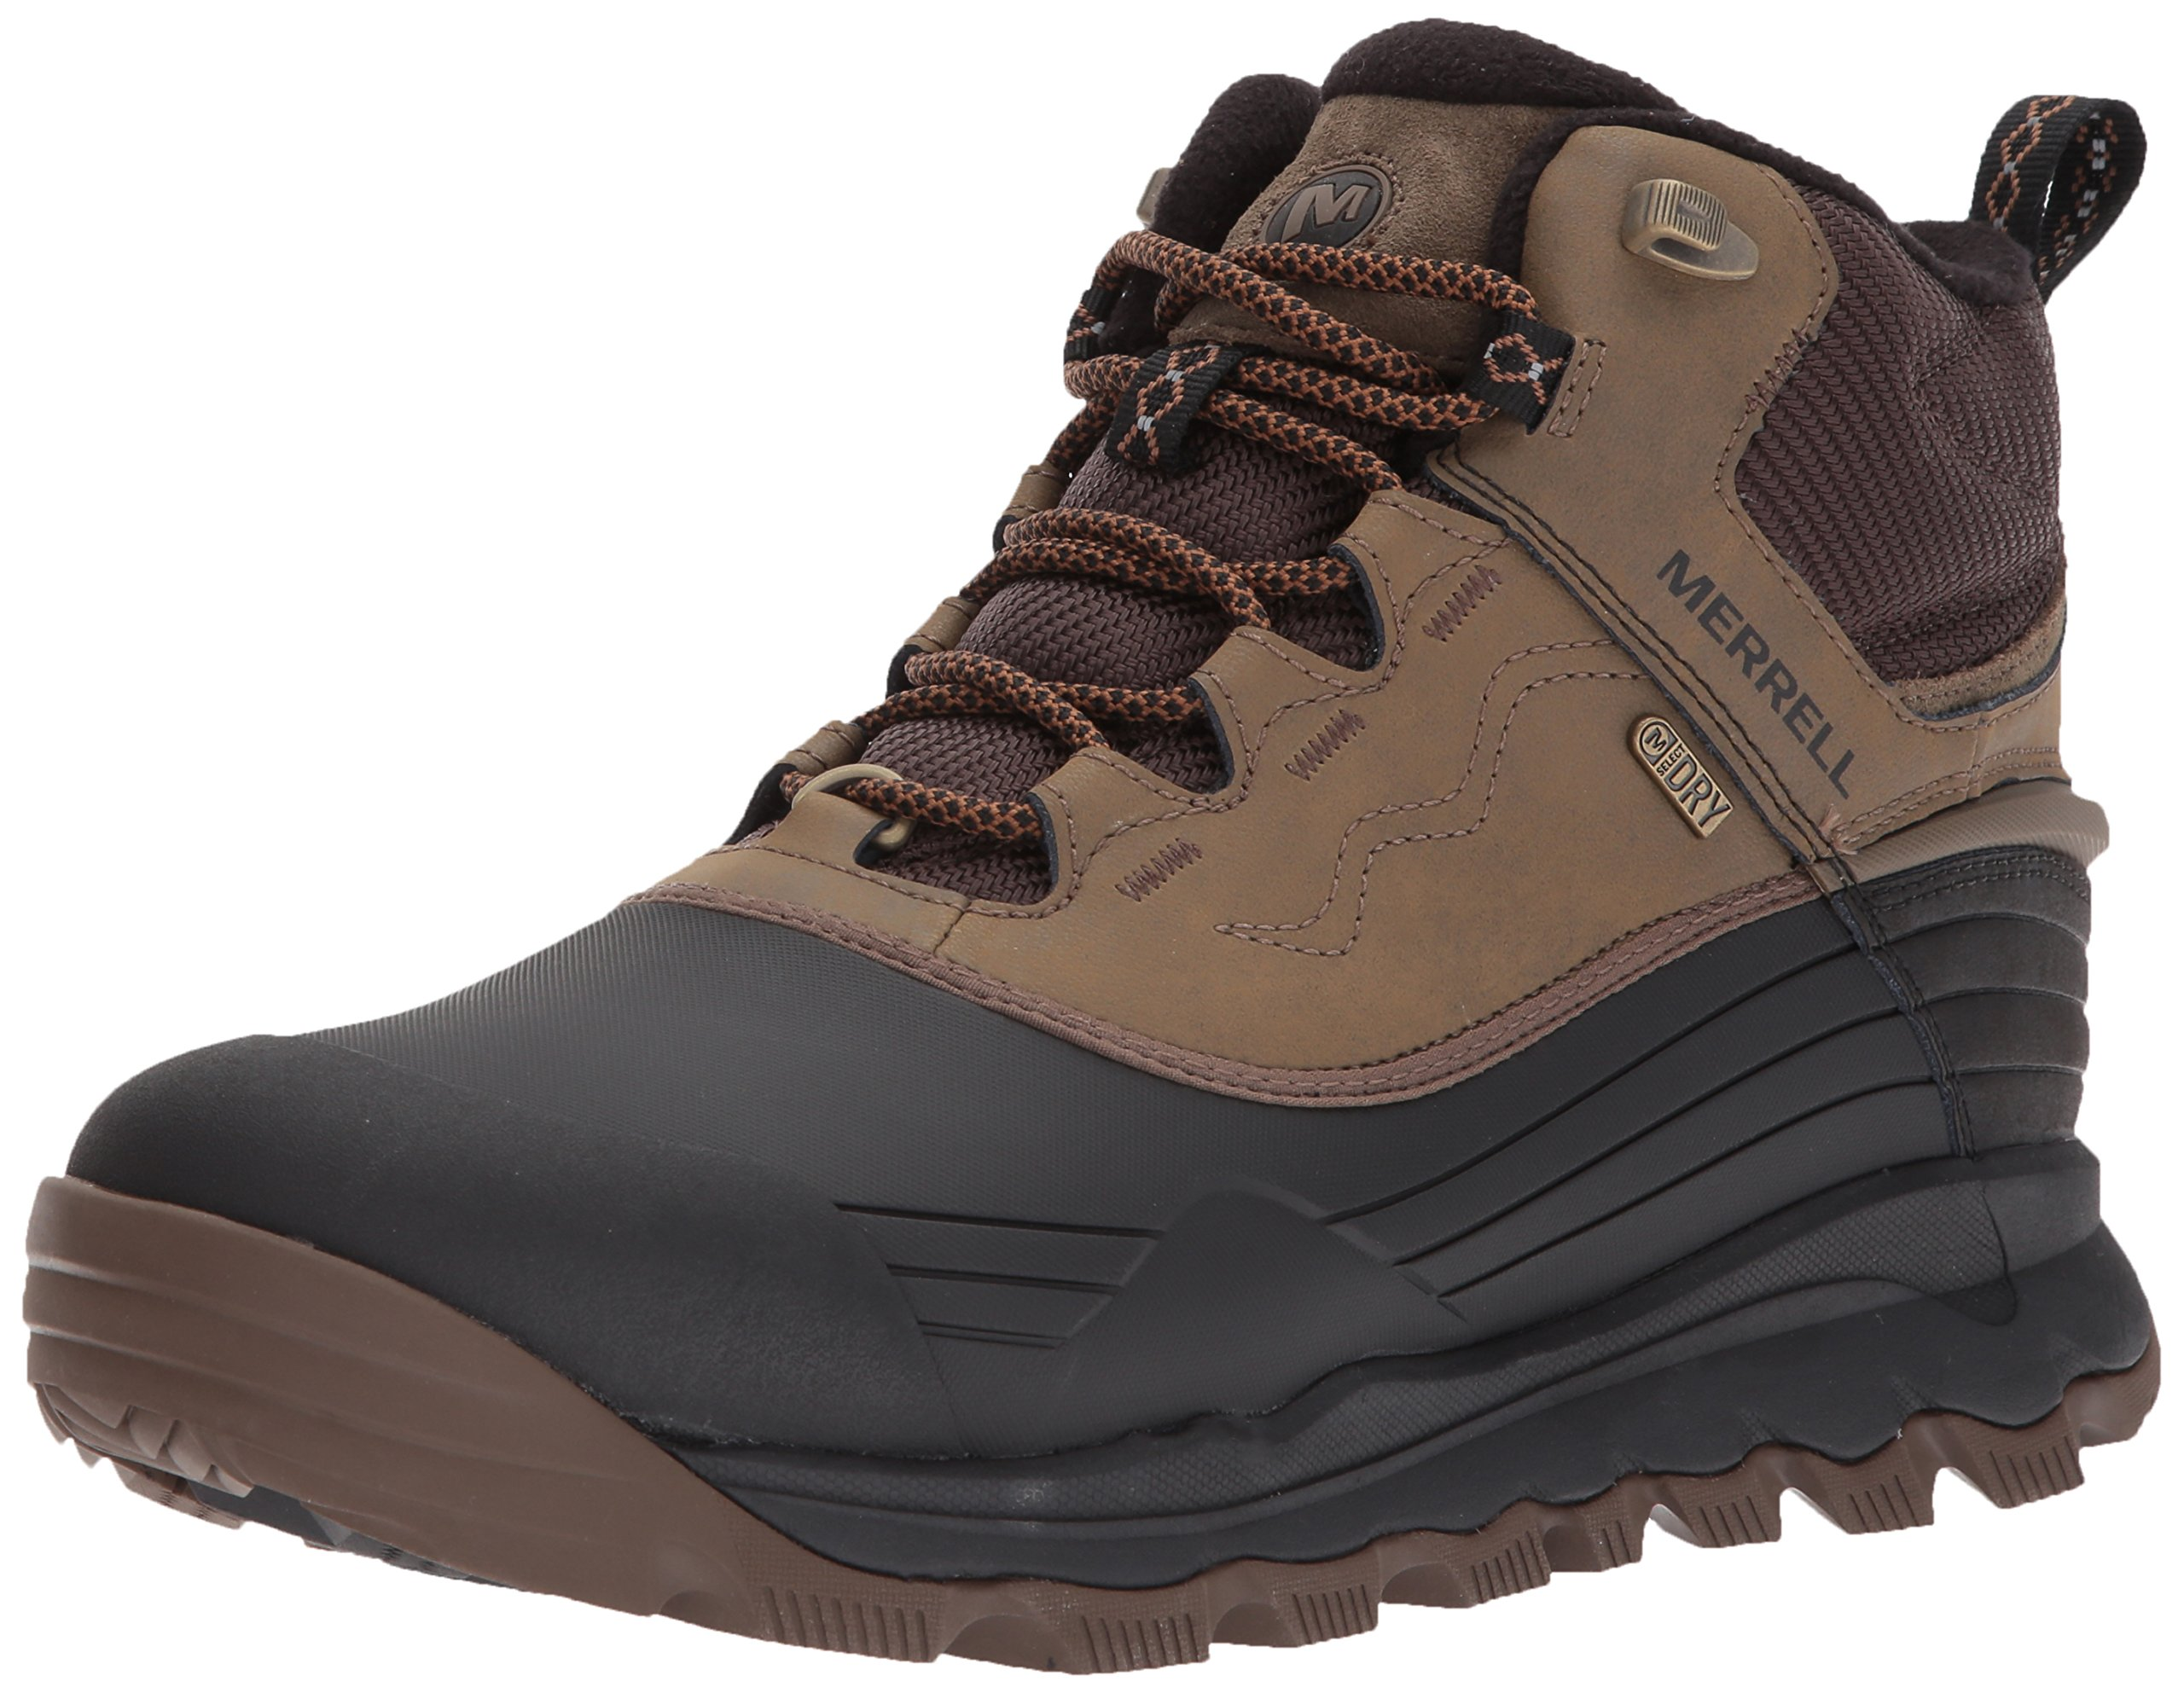 Merrell Men's Thermo Vortex 6'' Waterproof Snow Boot, Canteen, 13 M US